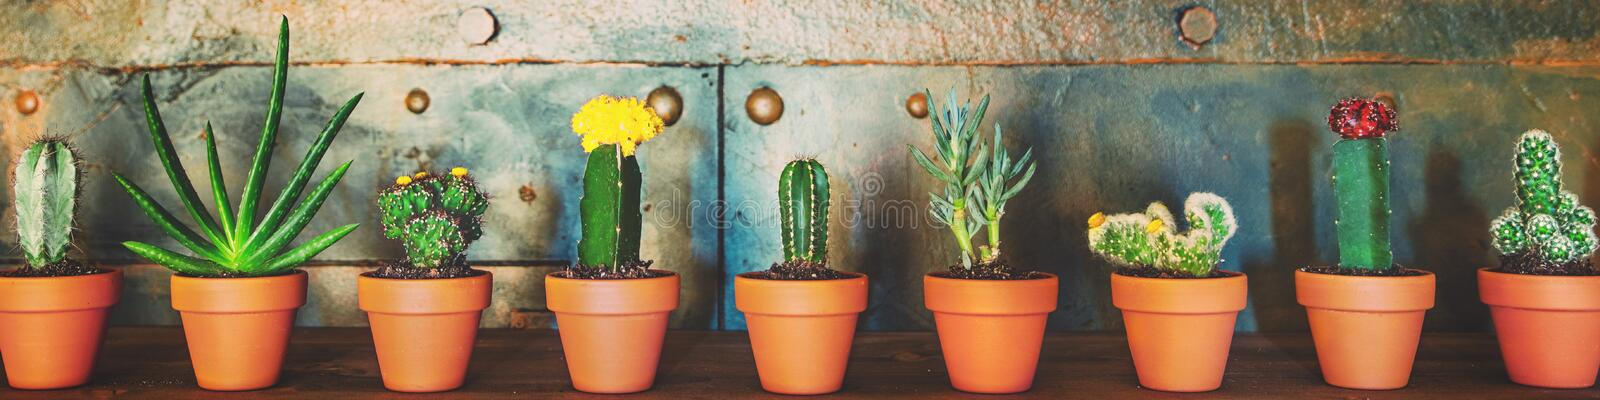 Panorama, various sorts of cactus plants in a row, metallic background stock photo